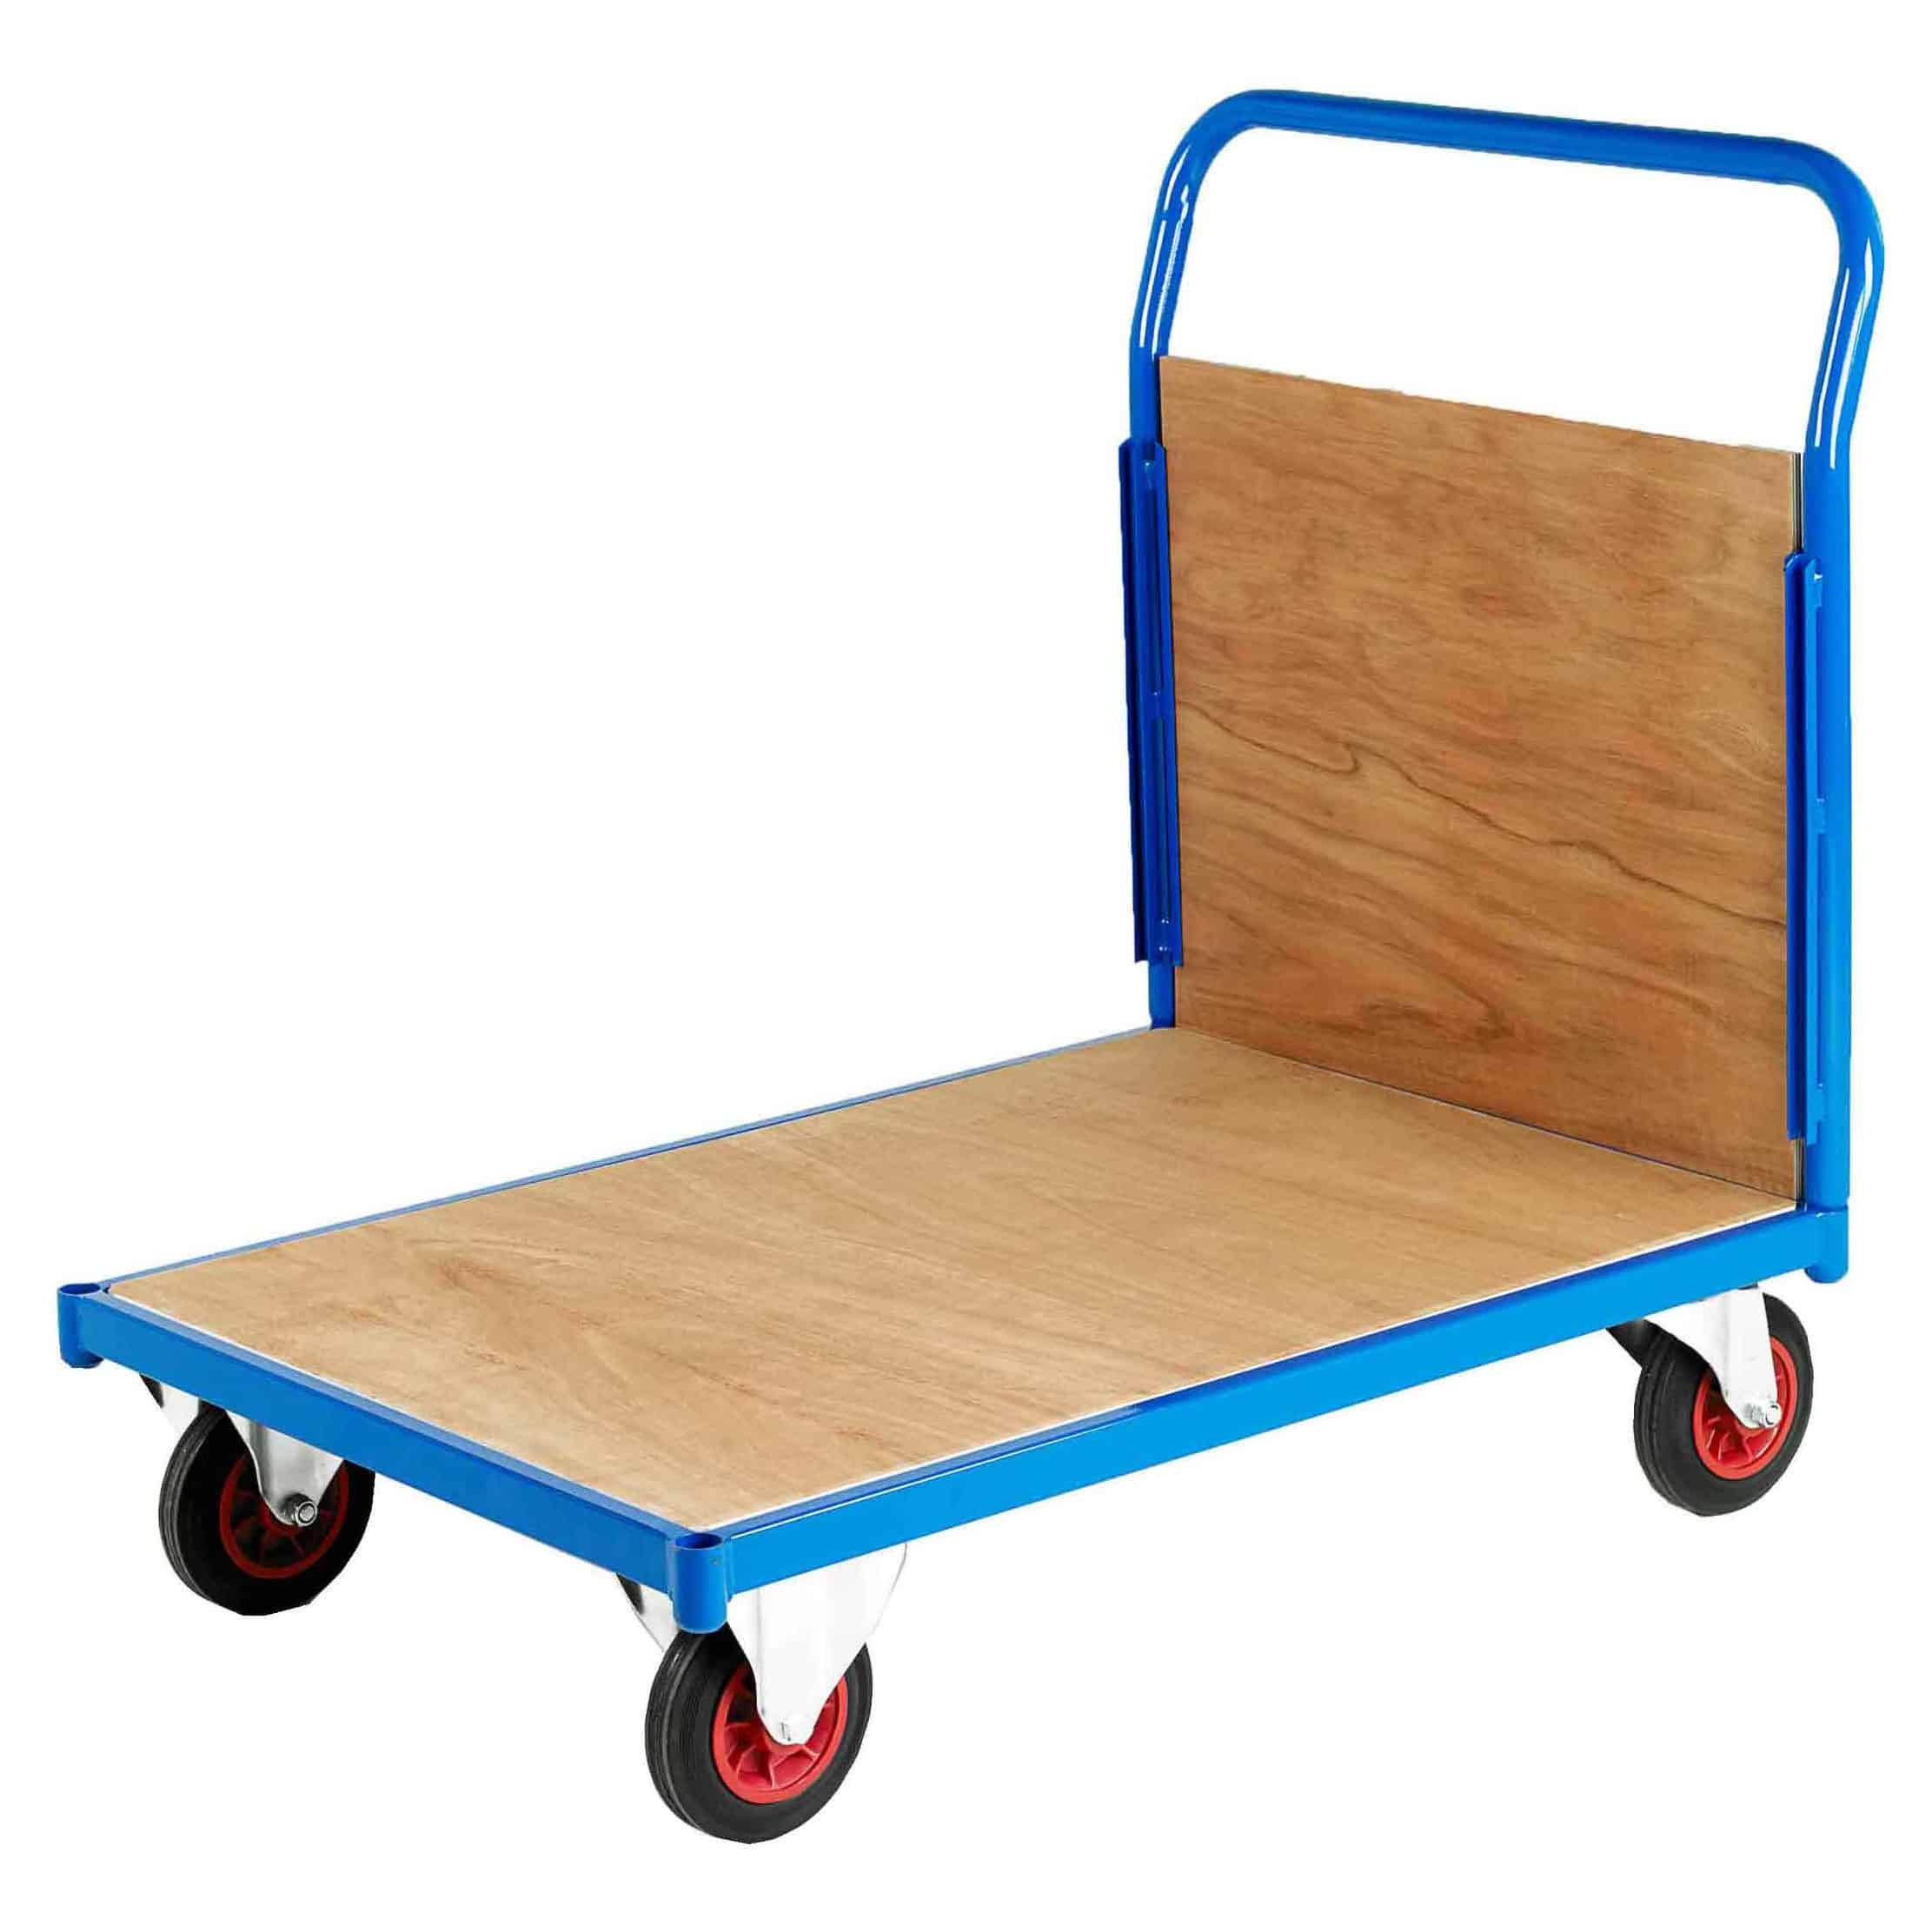 500 Single End Timber Platform Trolleys